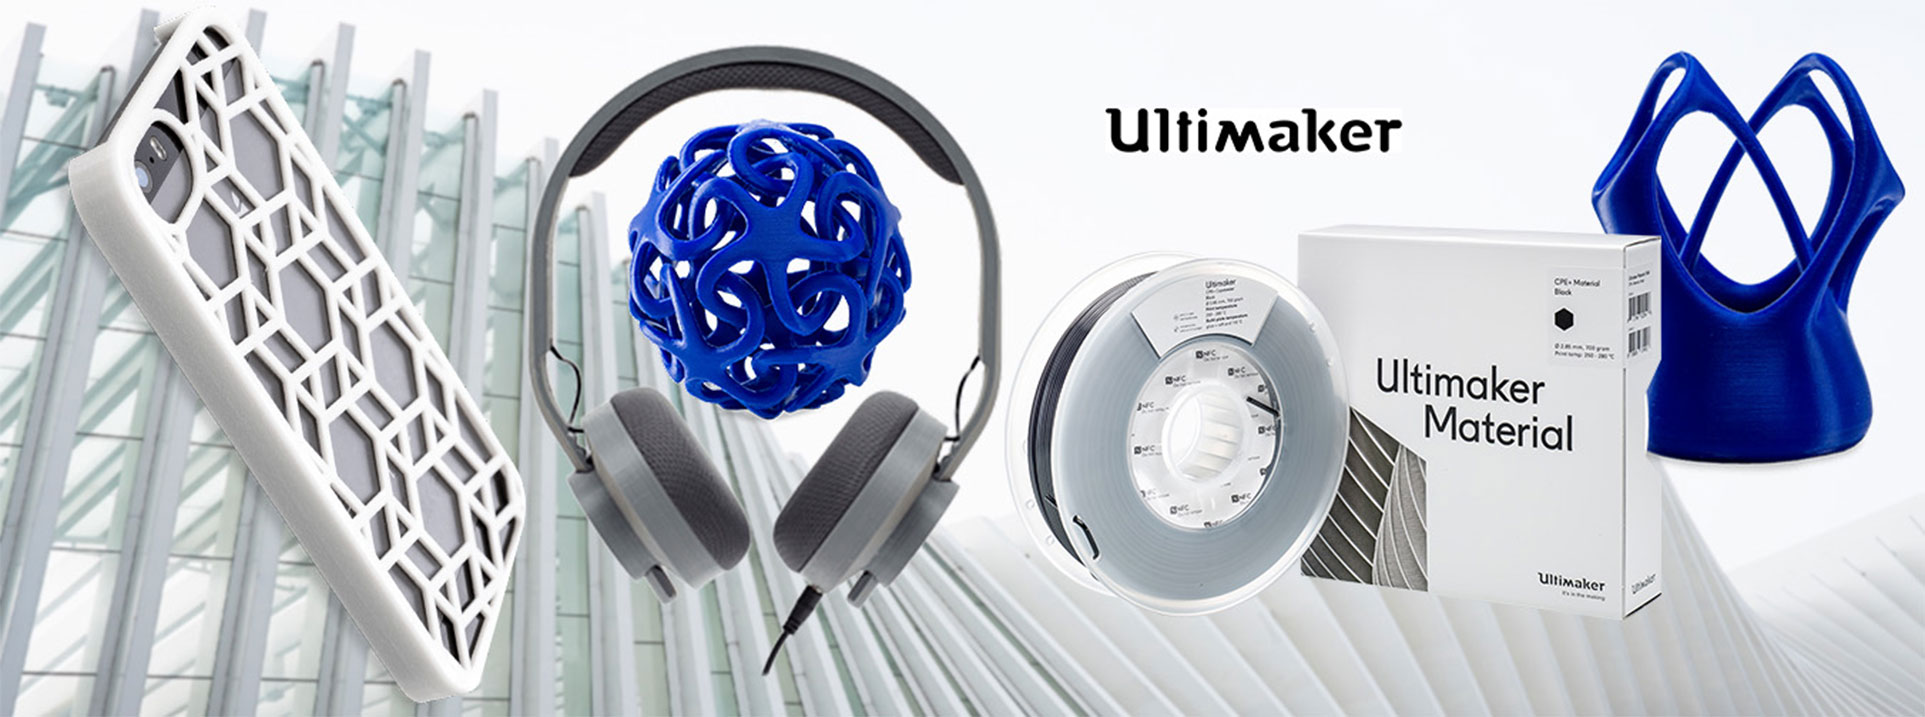 Shop and Buy Ultimaker 3D printer products online in Singapore